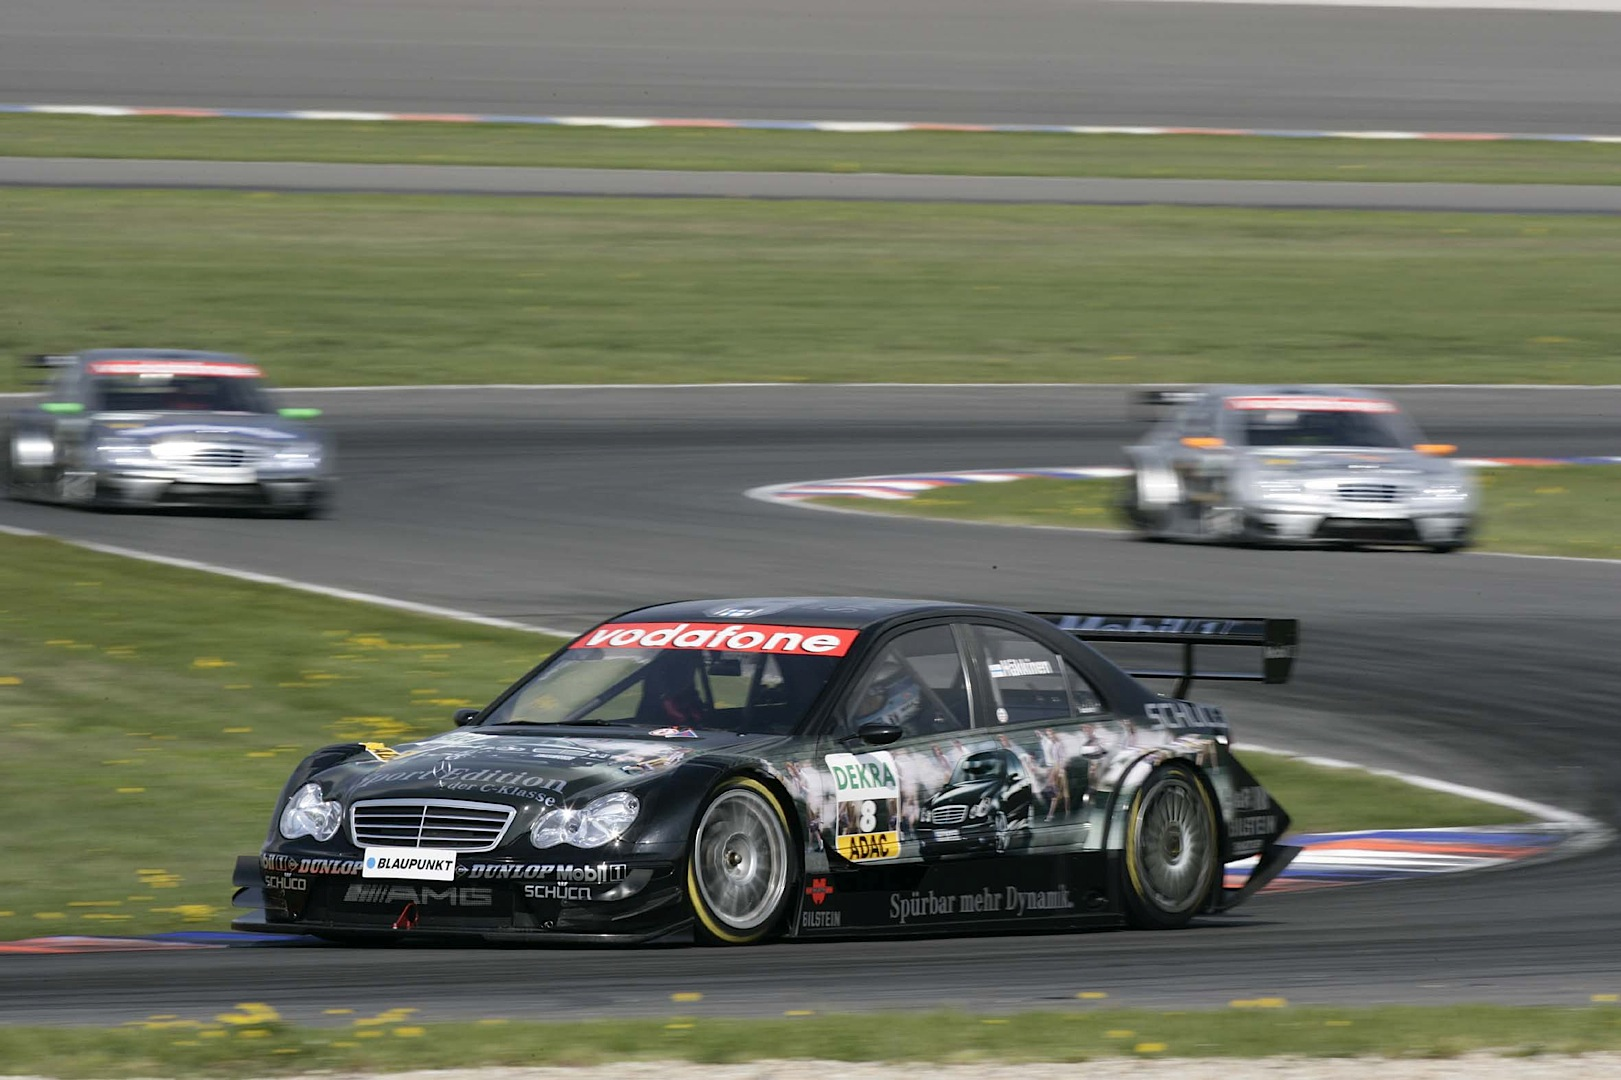 Land Speed Record >> A Short History of The Mercedes-Benz C-Class in DTM - autoevolution